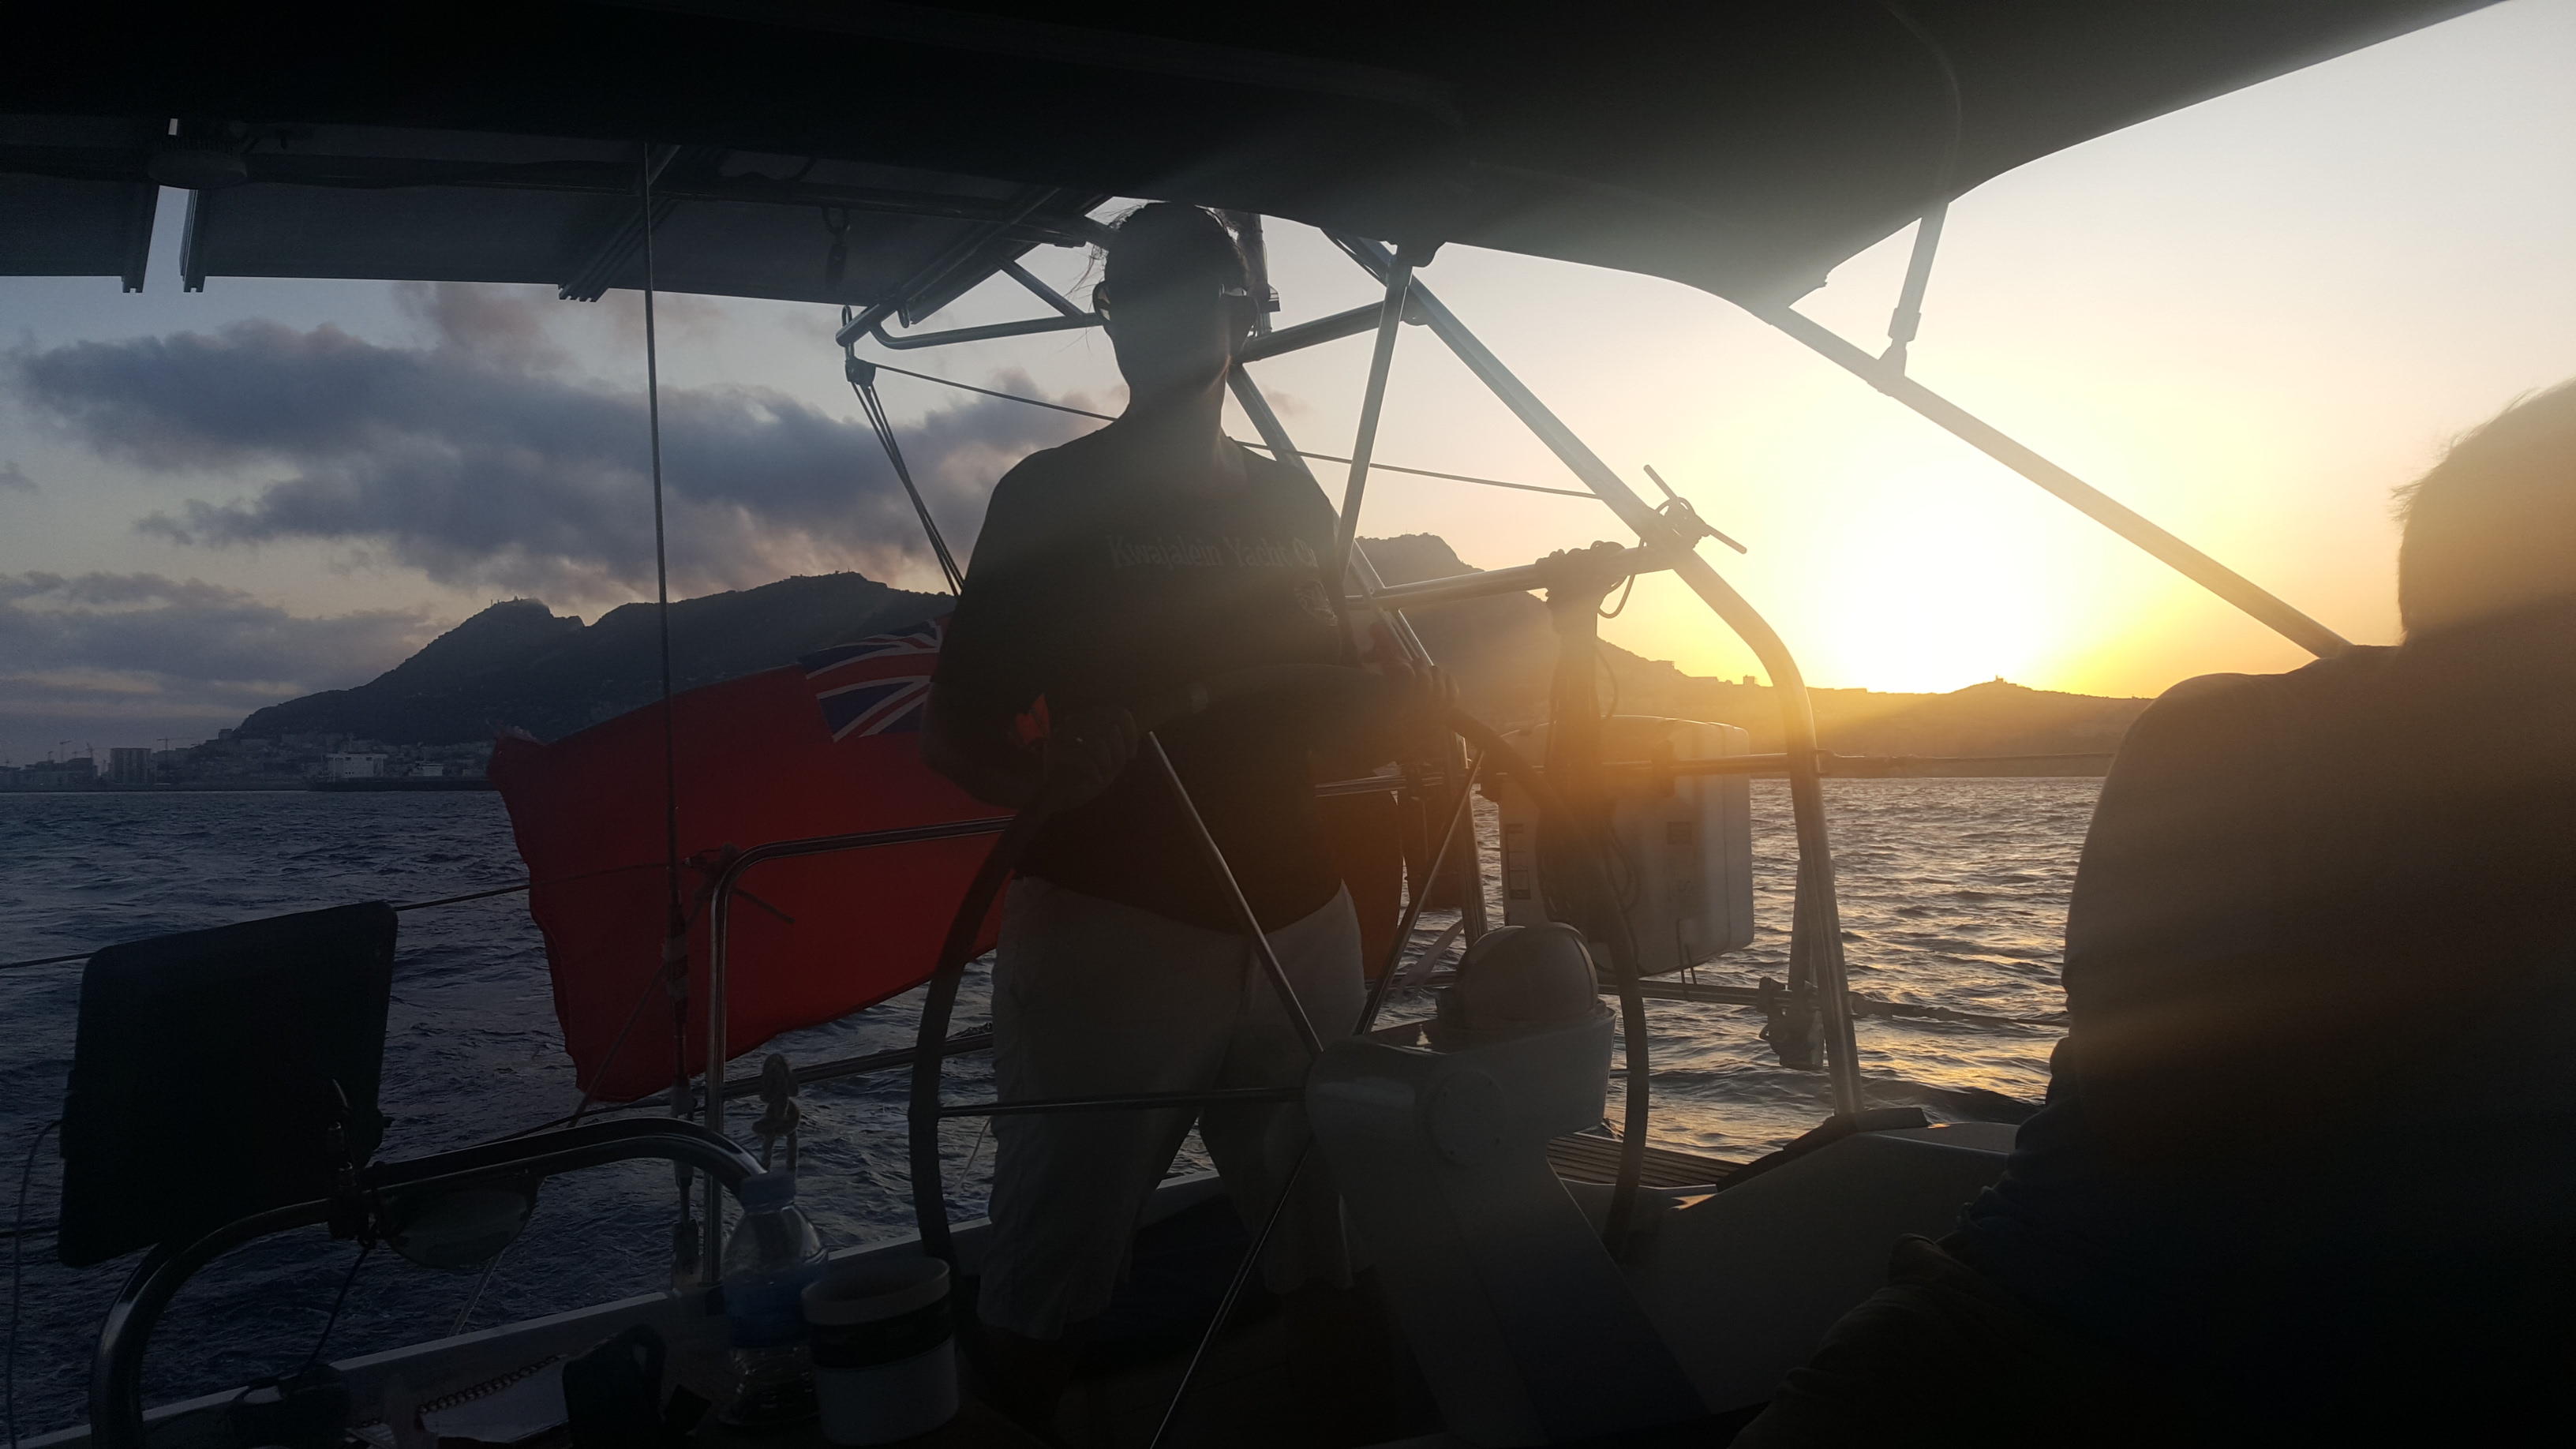 Me at the helm as we round the rock of Gibralta. Our British ensign is flying and the sun is low in the sky, creating a silhouette